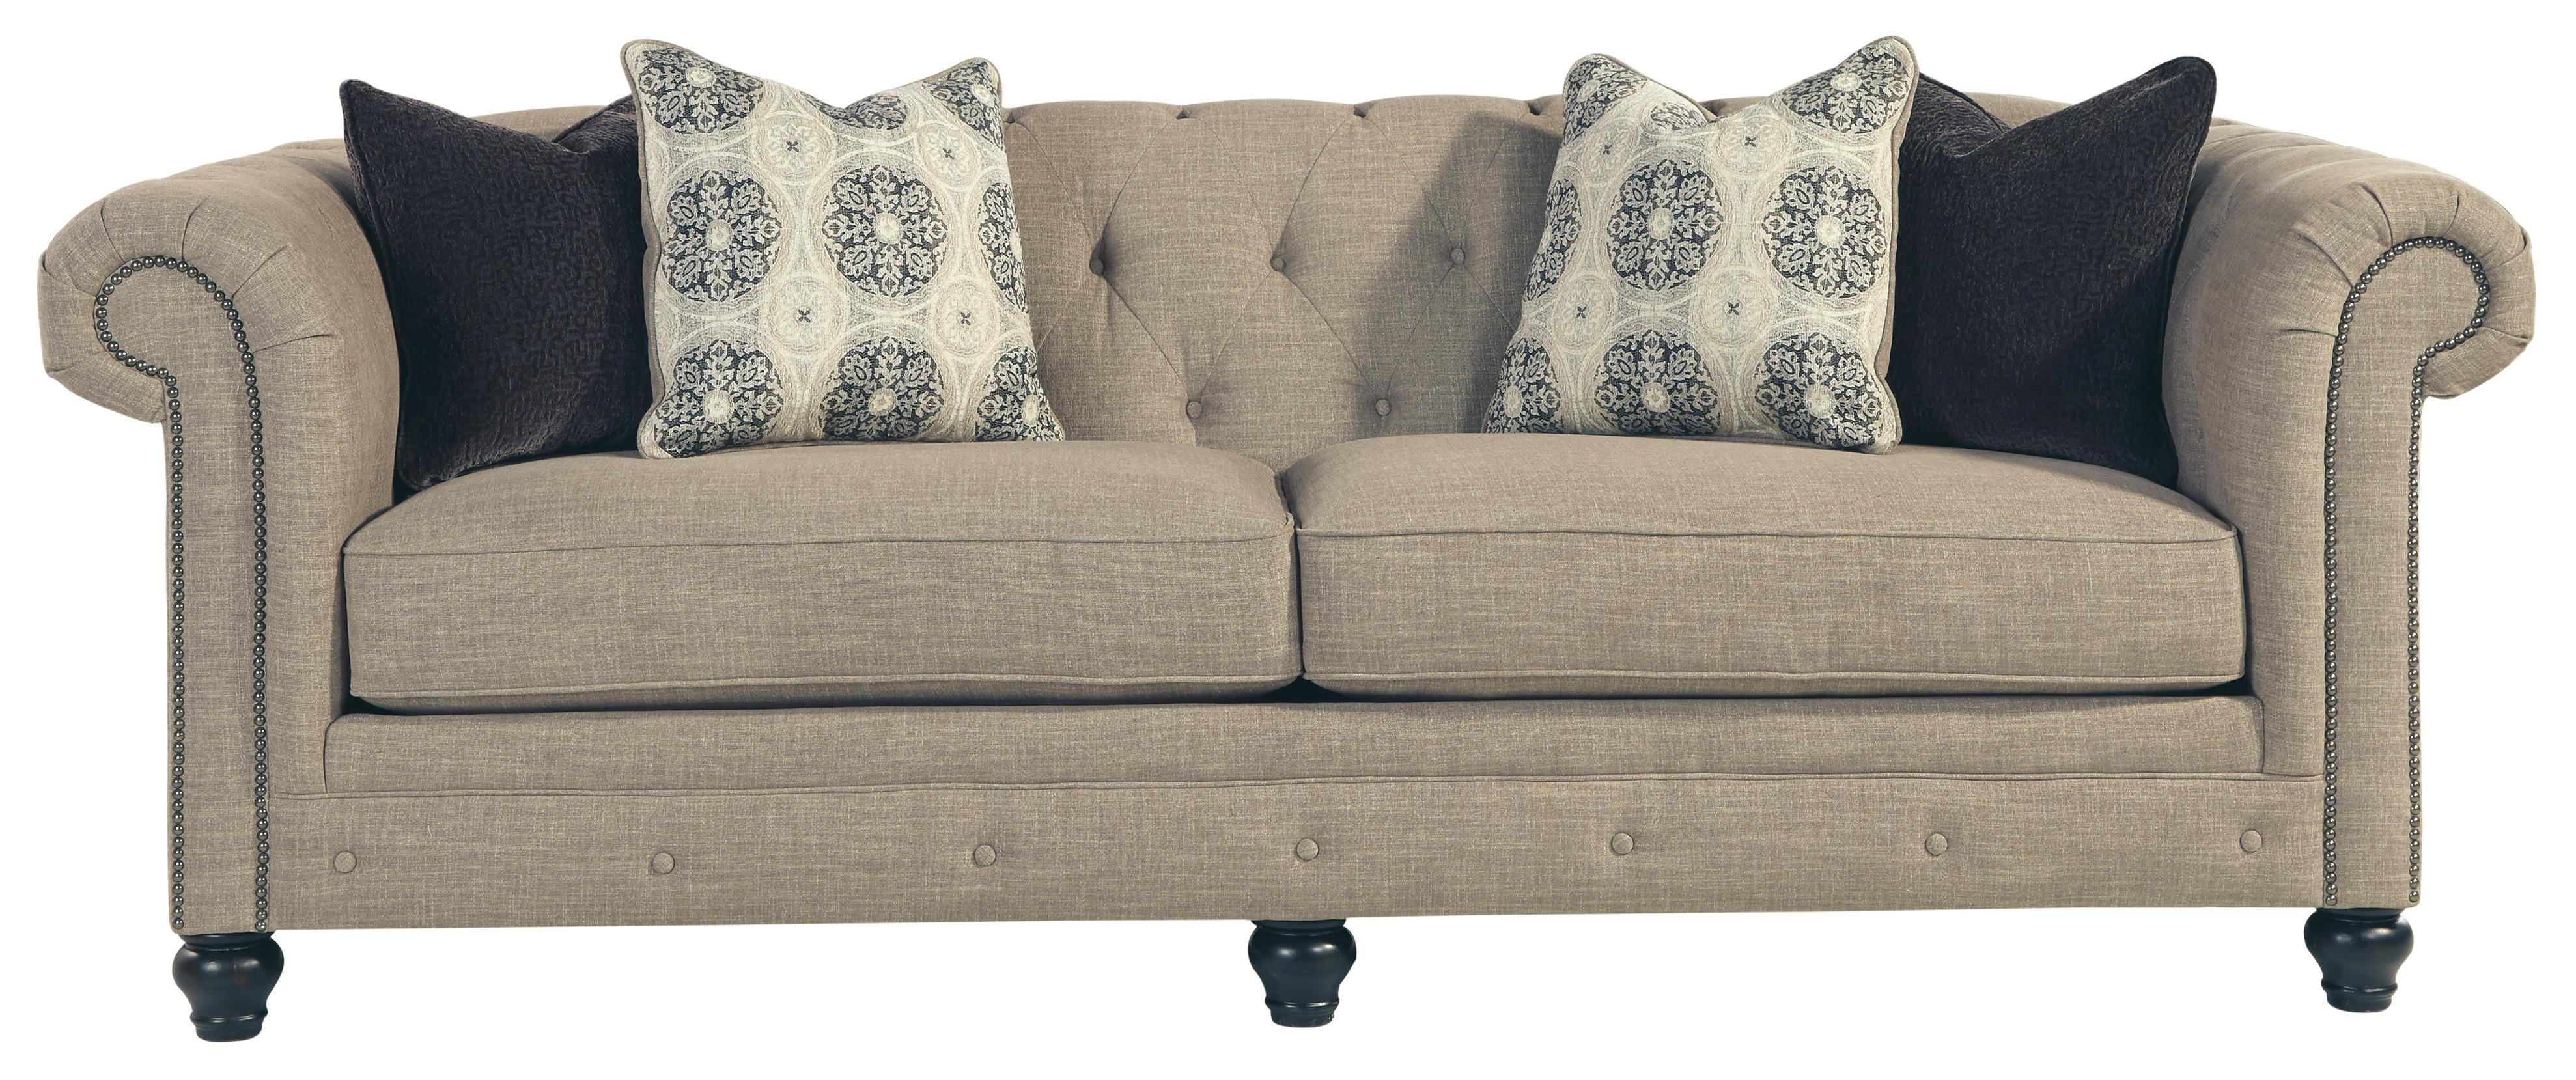 Benchcraft Azlyn Transitional Chesterfield Sofa With Linen Blend Pertaining To Ashley Tufted Sofa (Image 4 of 20)